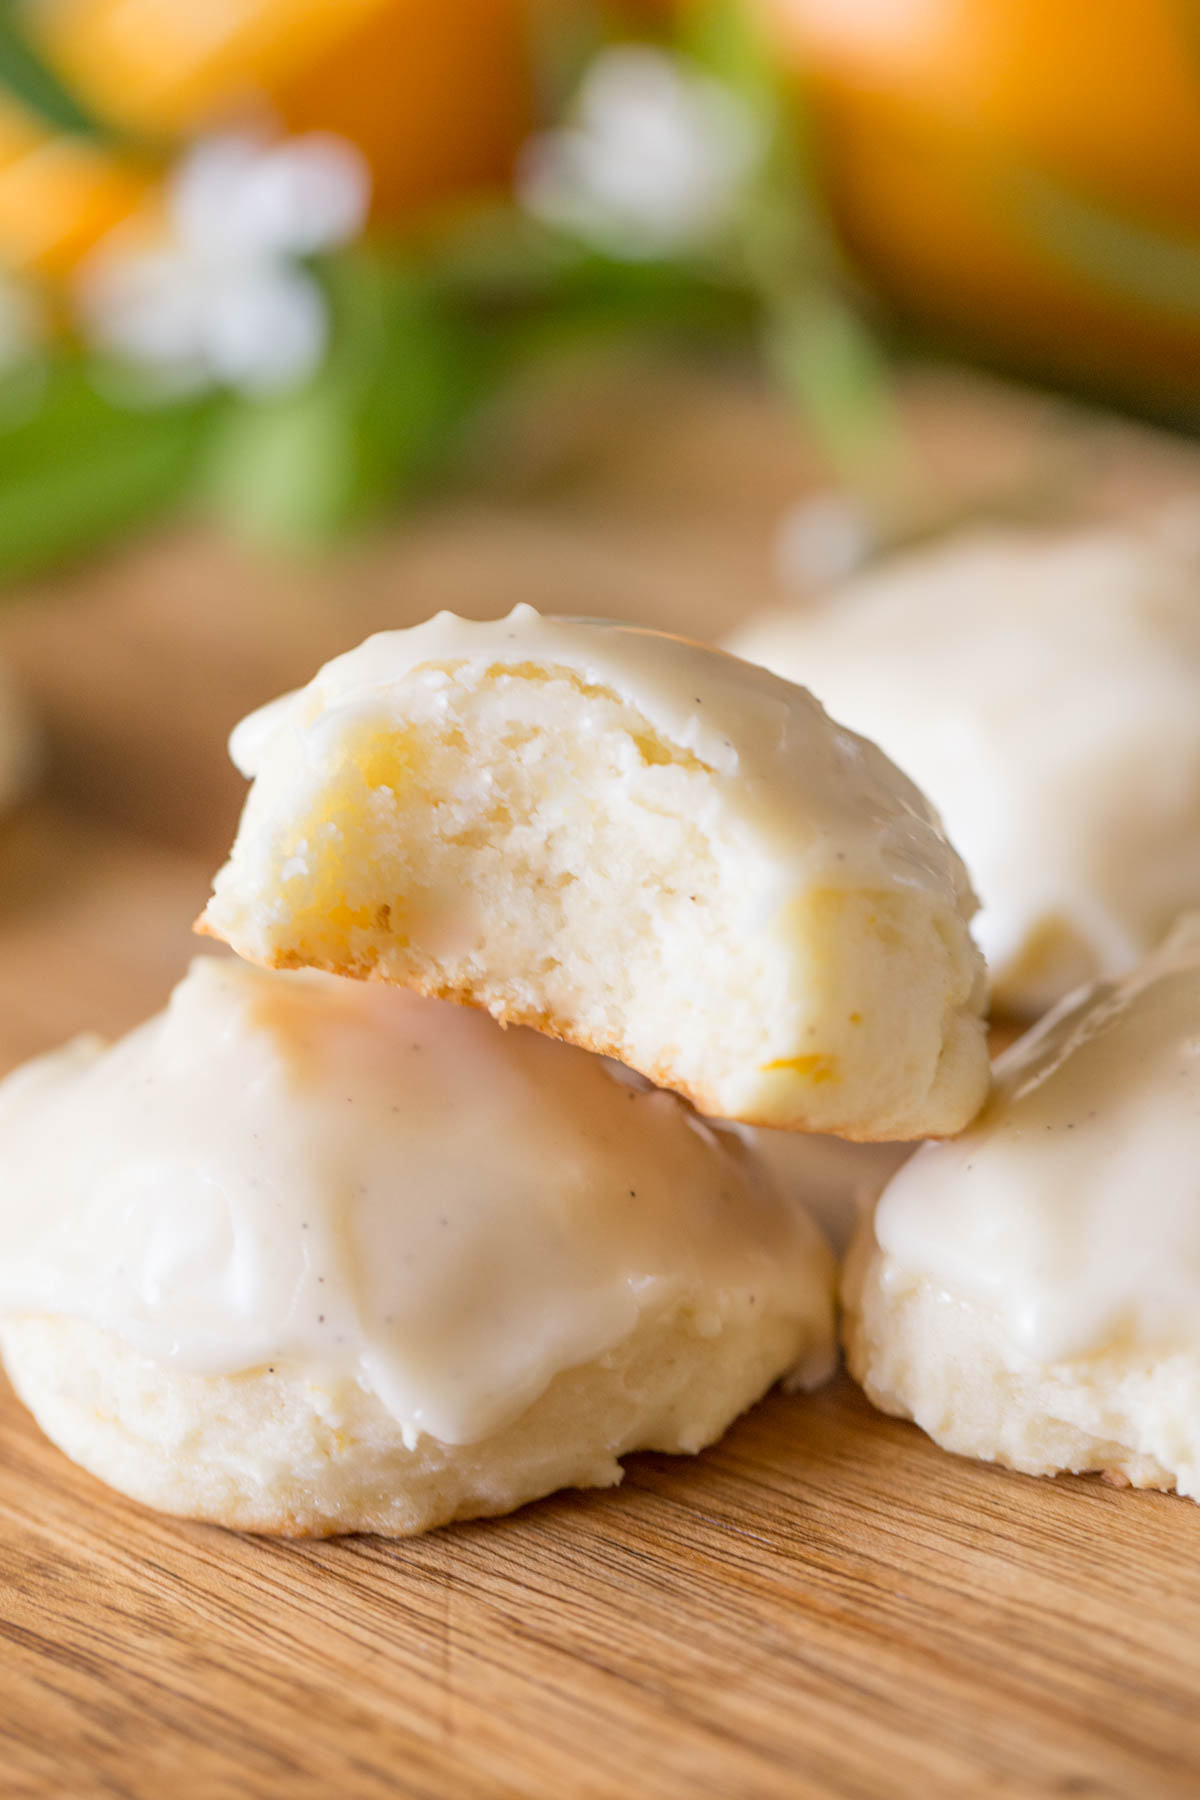 Stacked Orange Ricotta cookies with a bite missing, showing a close up on the inside of the cookie.